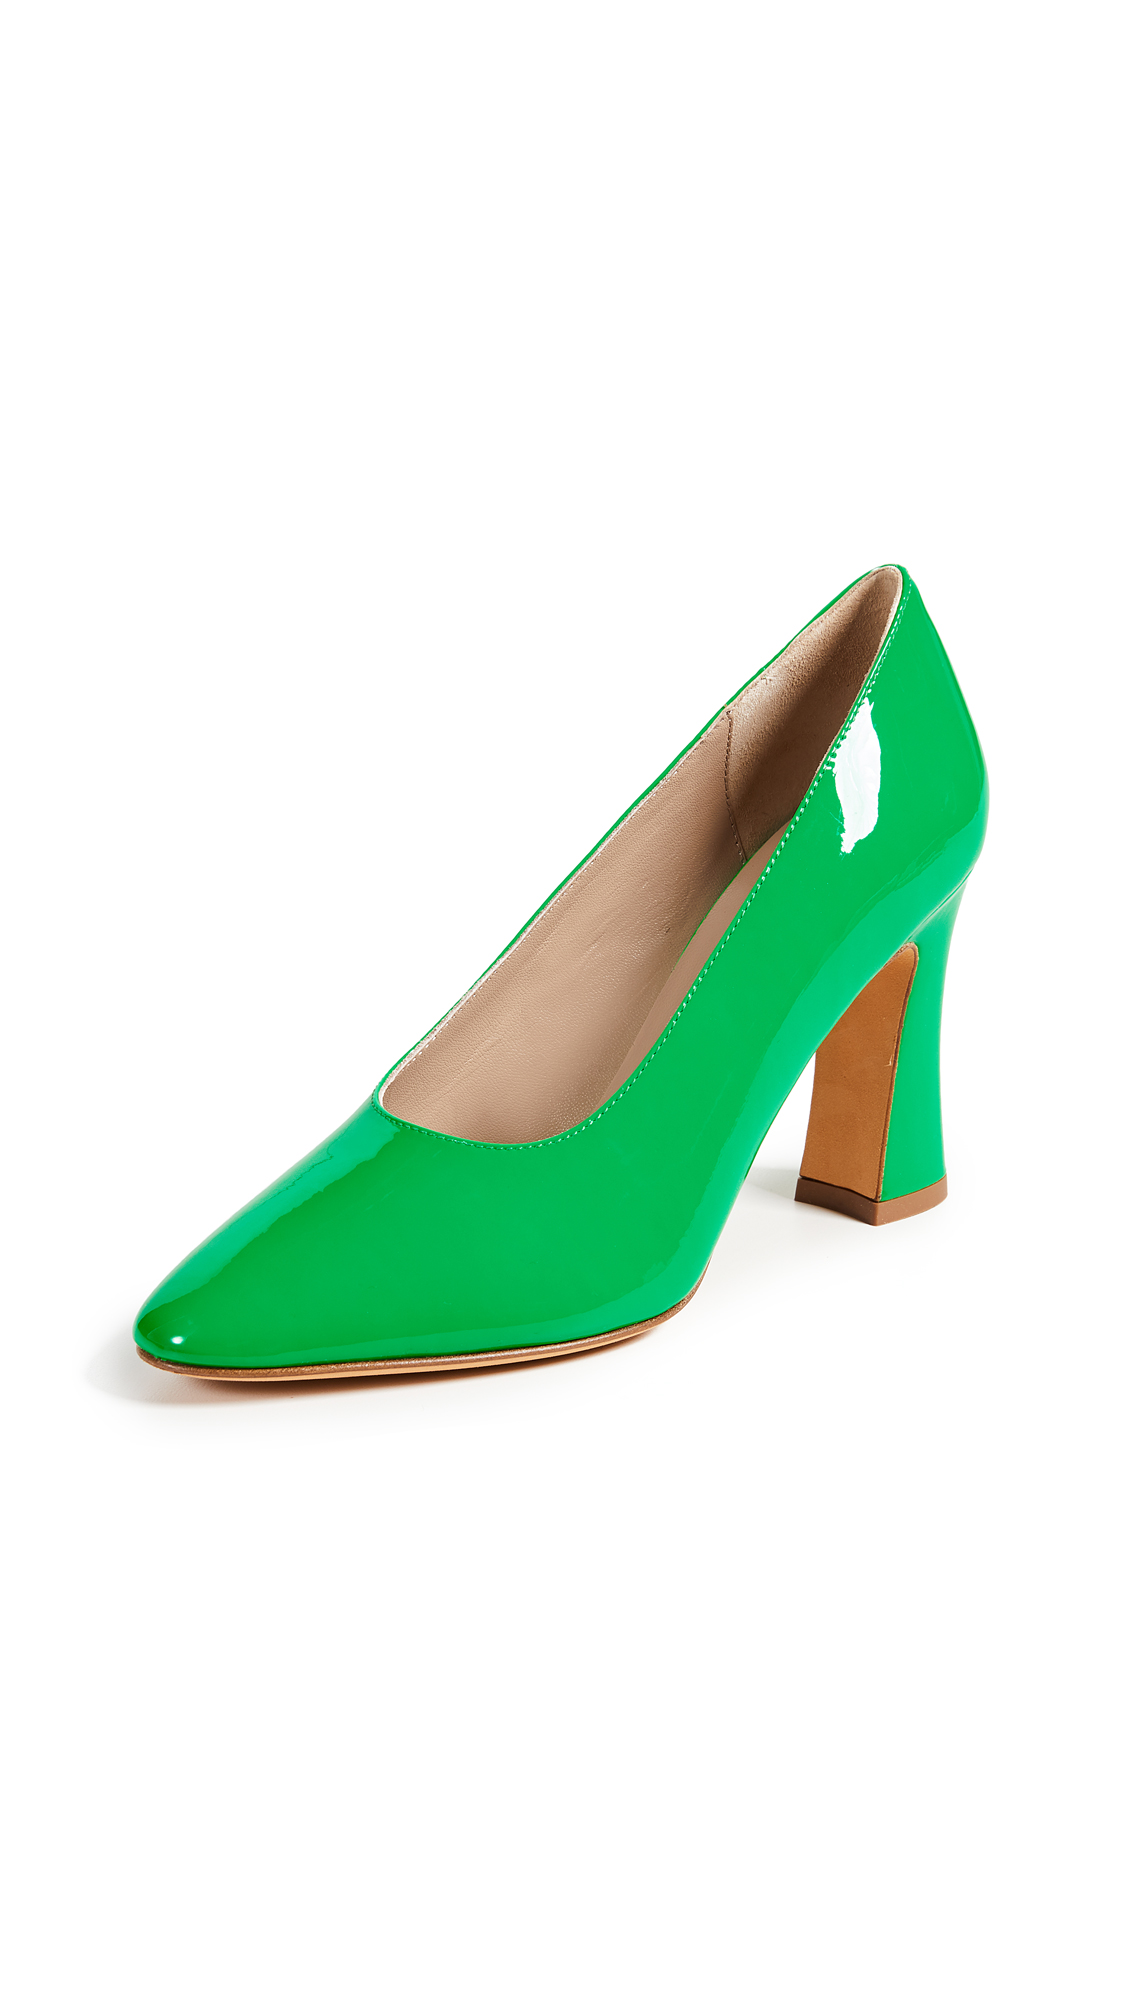 Maryam Nassir Zadeh Isa Pumps - Neon Green